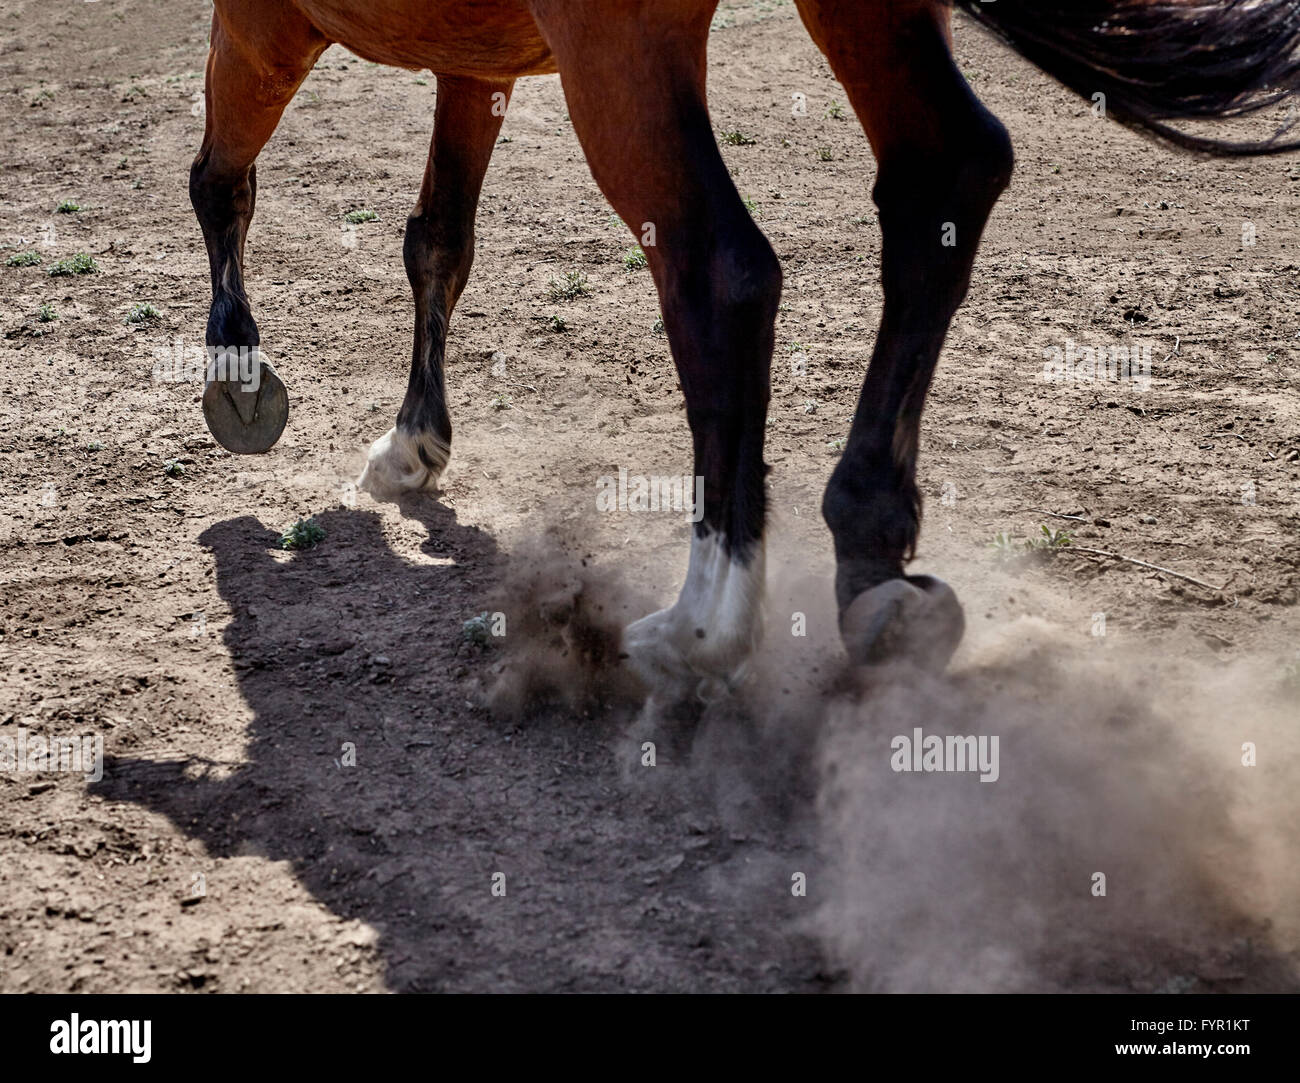 Dressage Horse With Rider Canter Hoof Legs Closeup Photograph Stock Photo Alamy